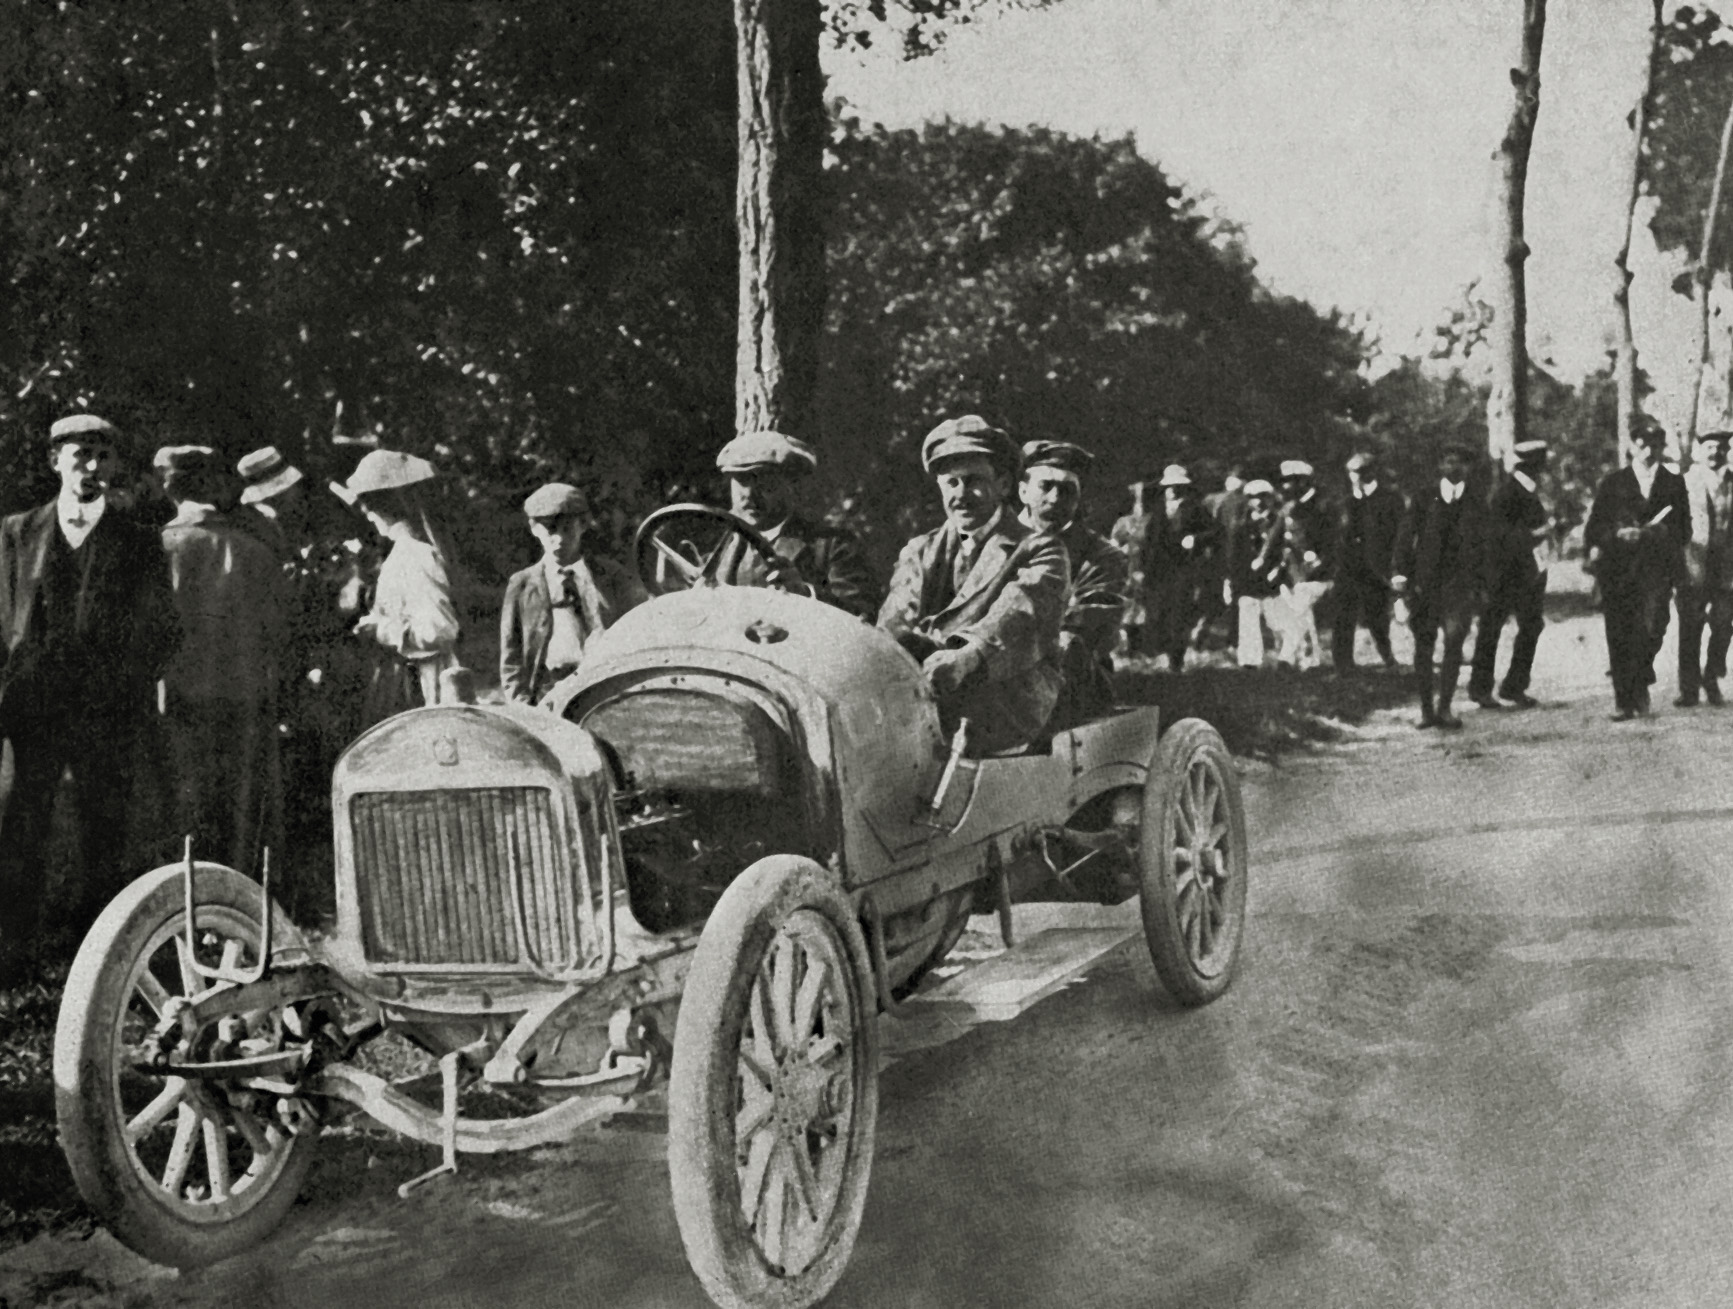 Laurin & Klement FC from 1908: The first major motor racing successes of automobiles from Mladá Boleslav - Image 5